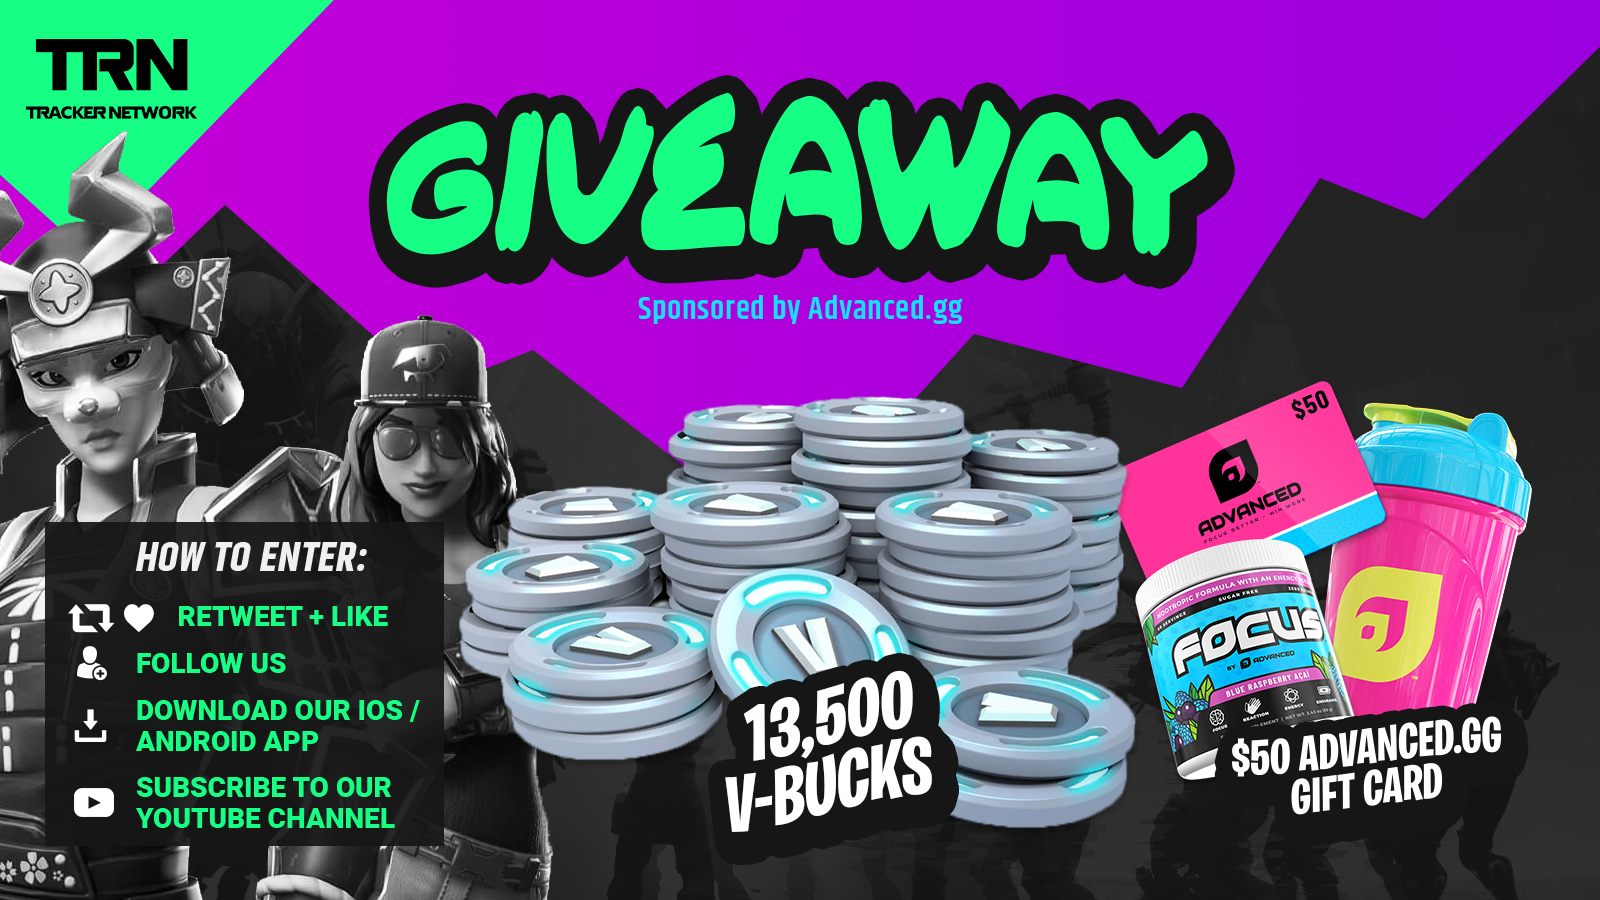 FORTNITE TRACKER 13,500 V-BUCKS and $50 ADVANCED.GG STORE CREDIT 06/14/2019) Giveaway Image